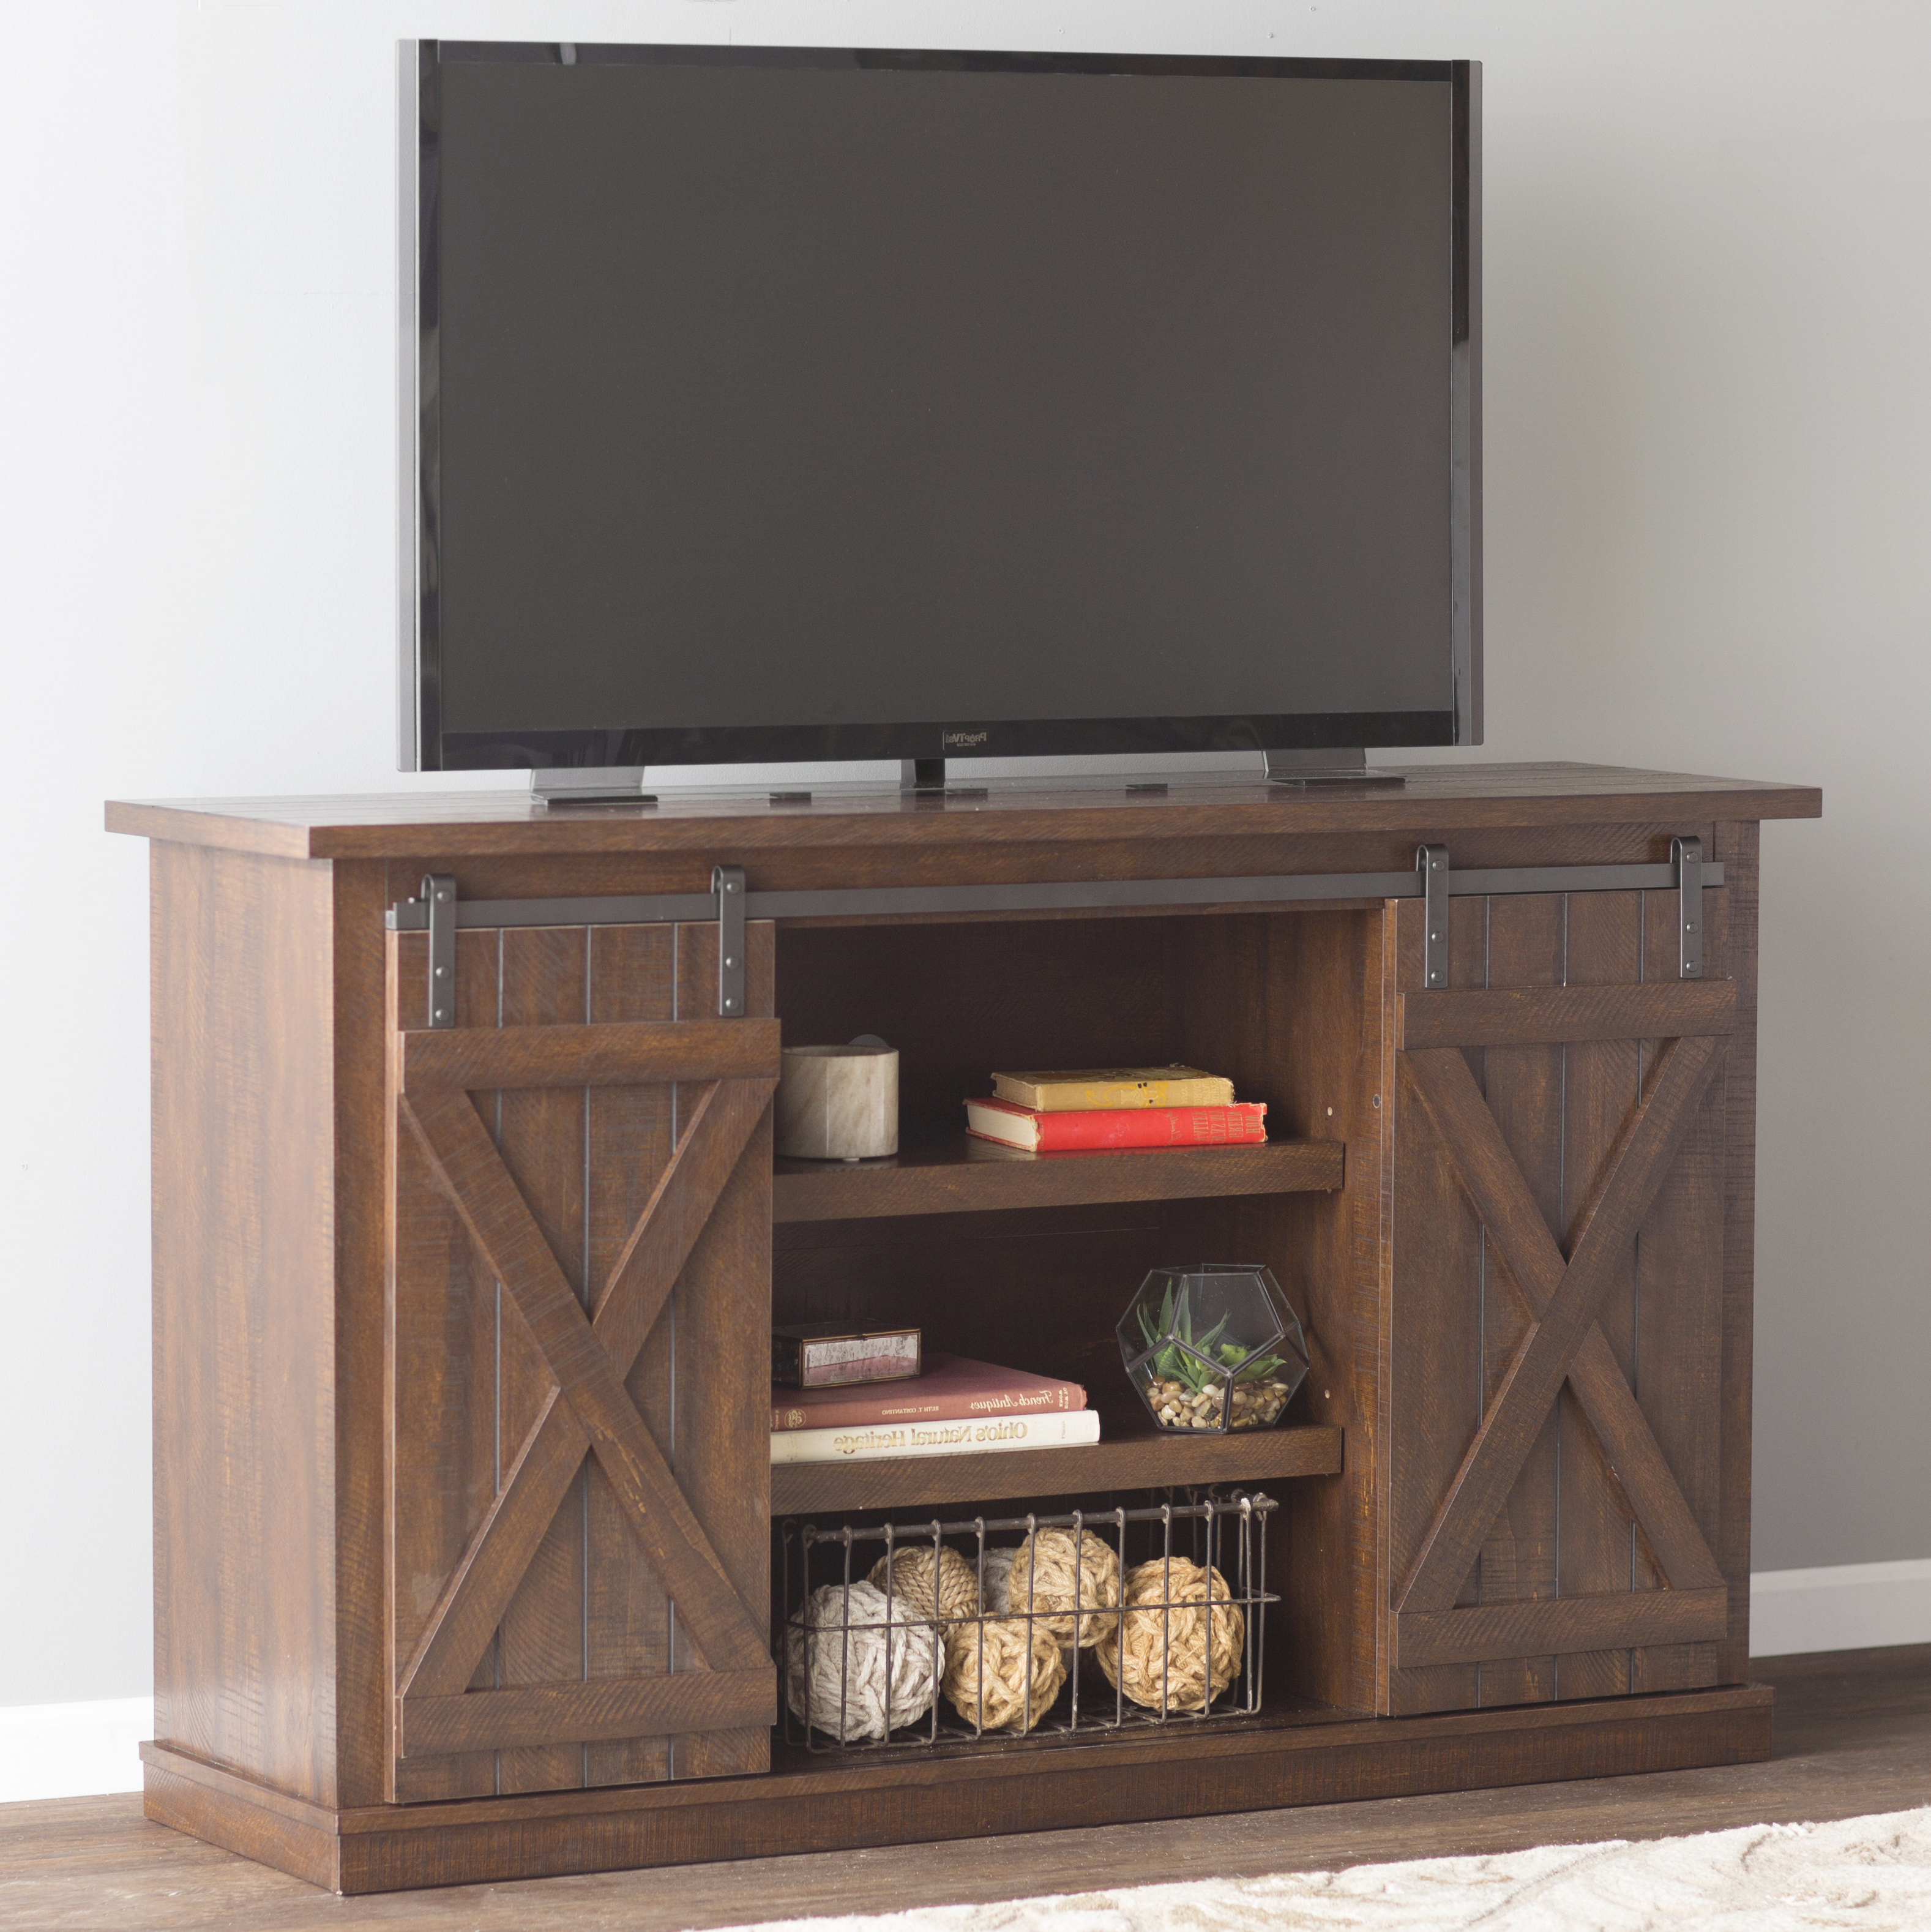 End Table And Tv Stand Set | Wayfair Throughout Combs 63 Inch Tv Stands (View 9 of 20)